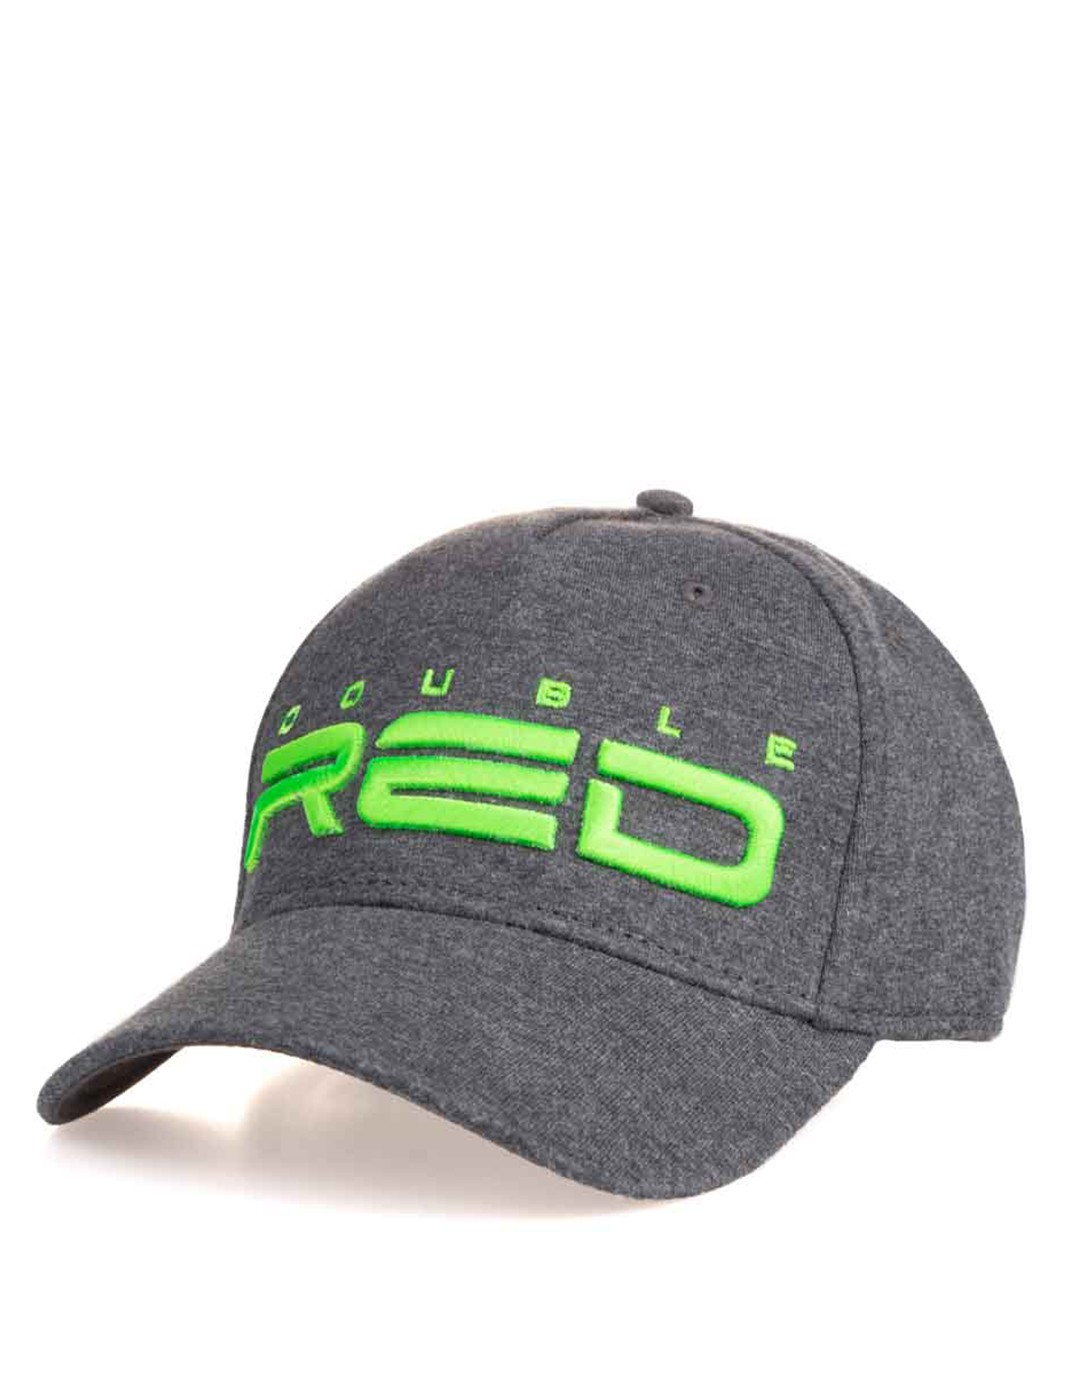 JERSEY Winter Edition 3D Embroidery Grey Cap